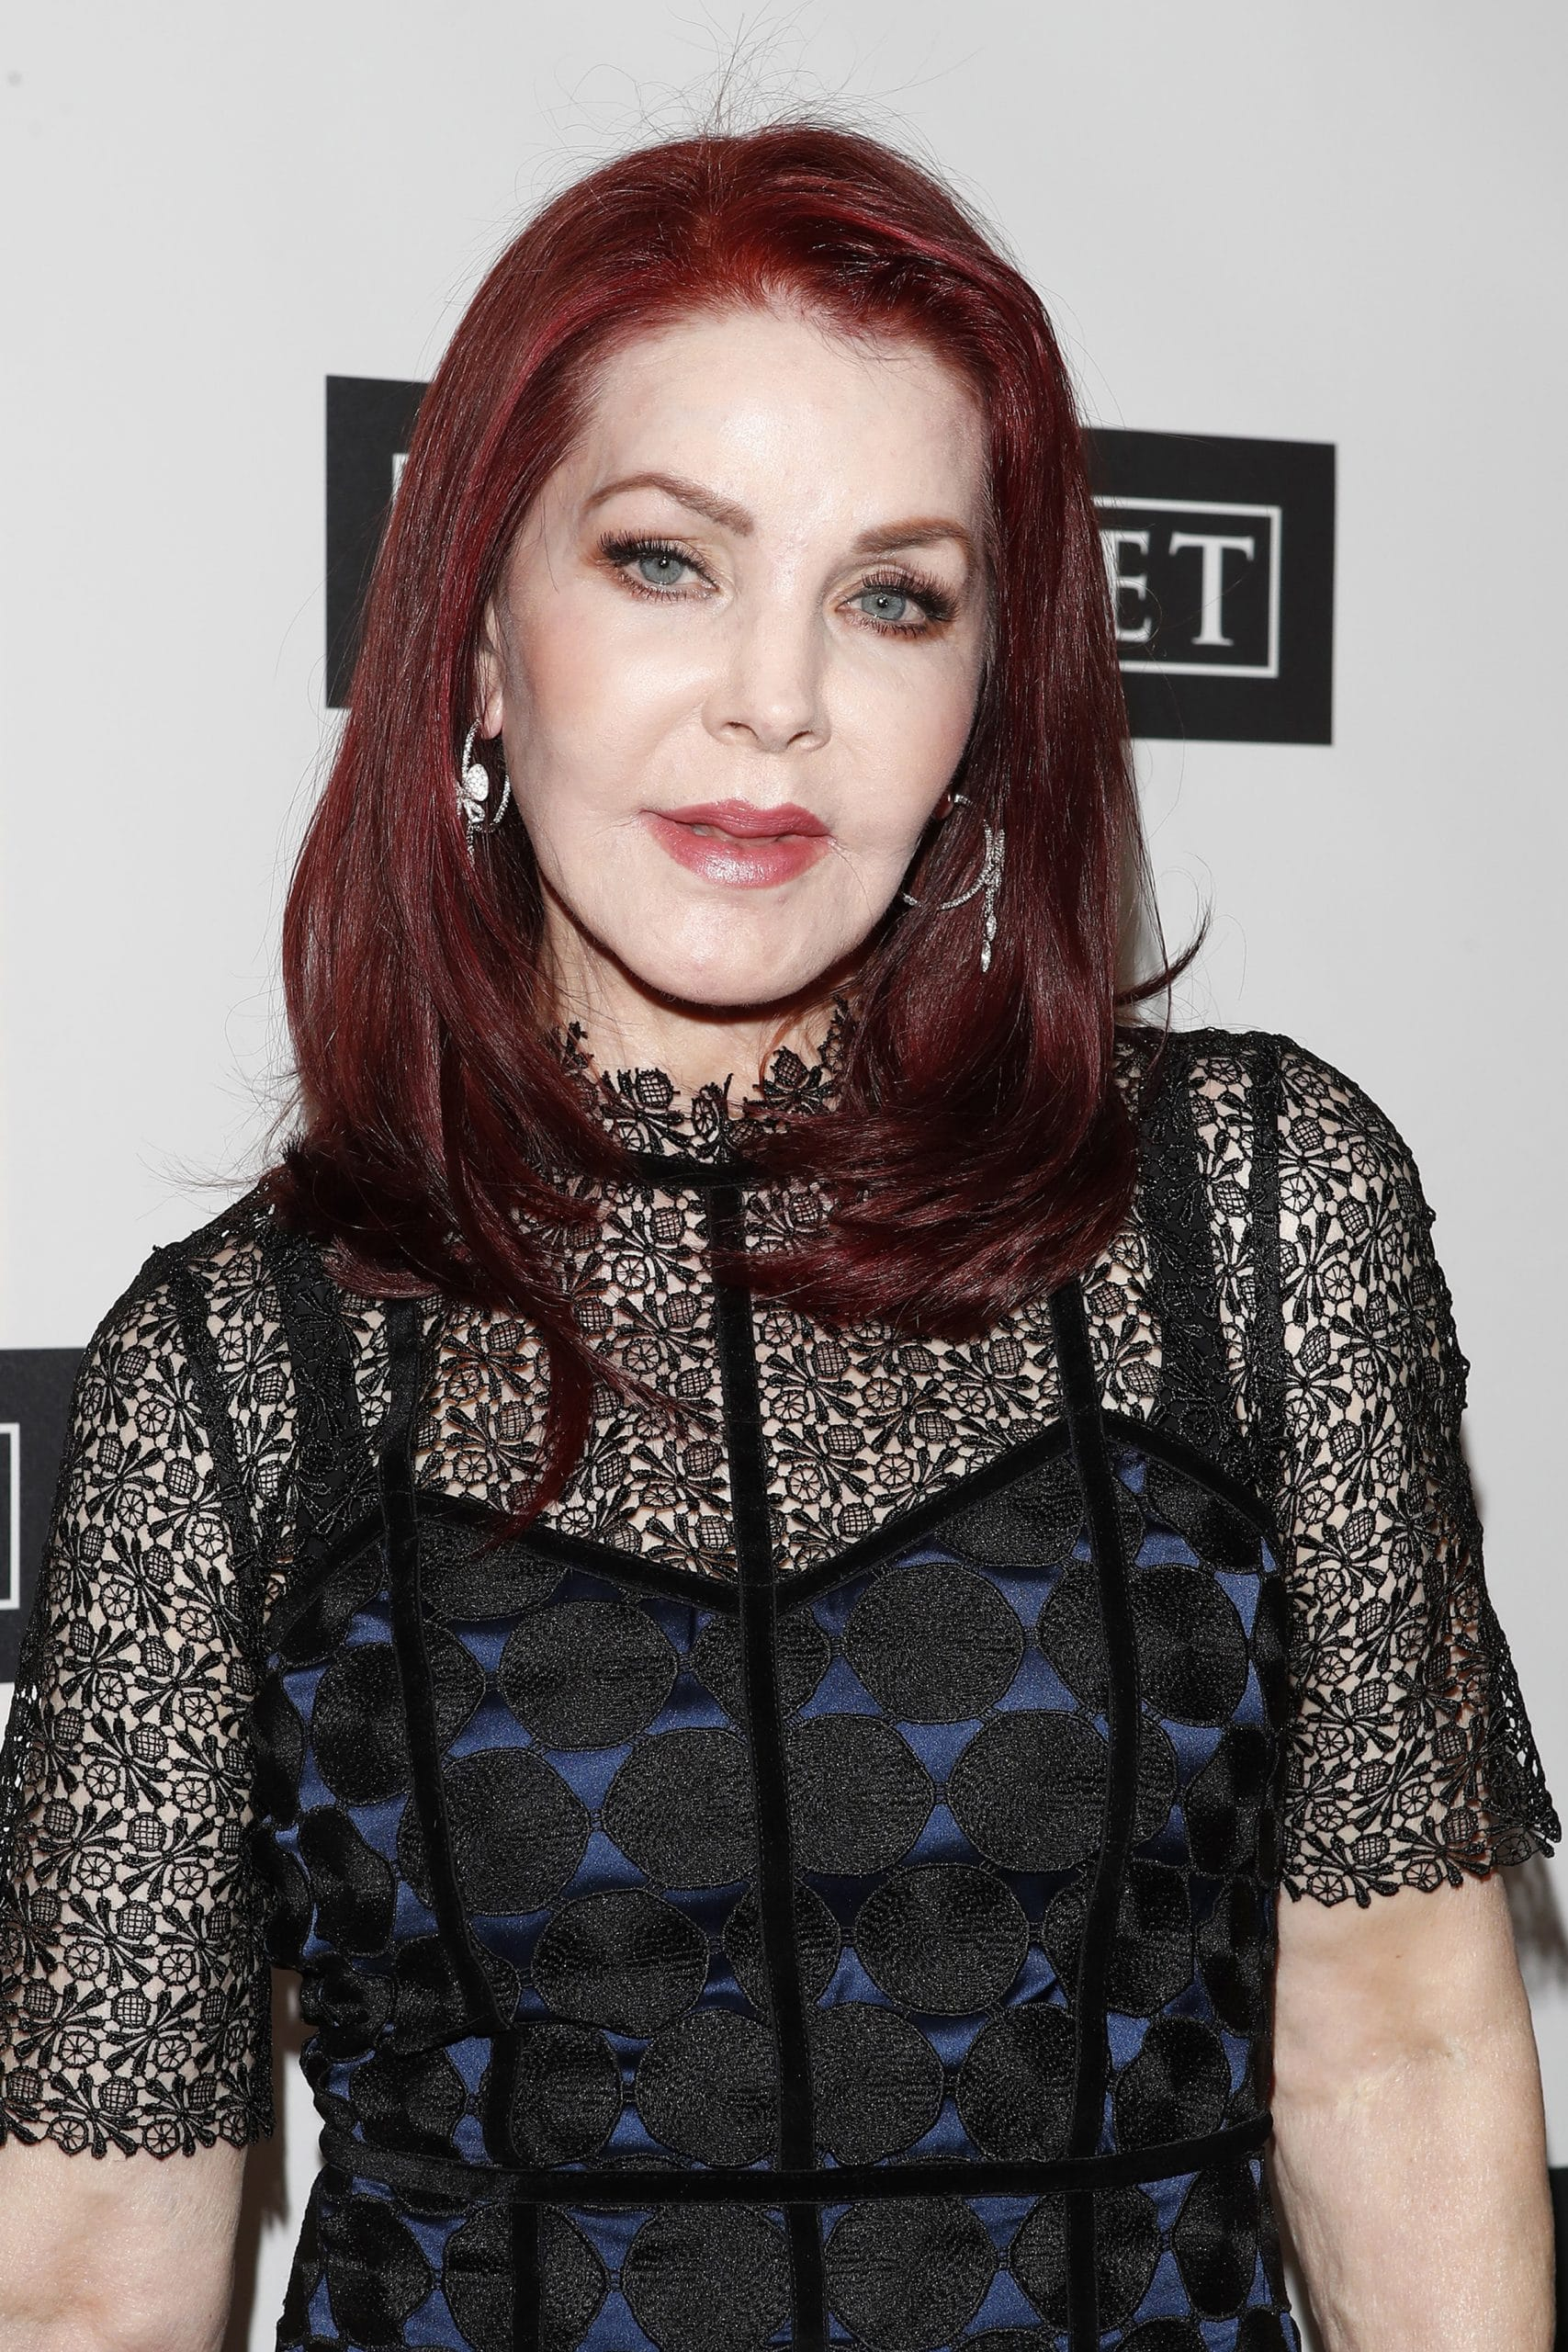 Priscilla Presley Giving Up Her $13M Beverly Hills Mansion For A New Condo